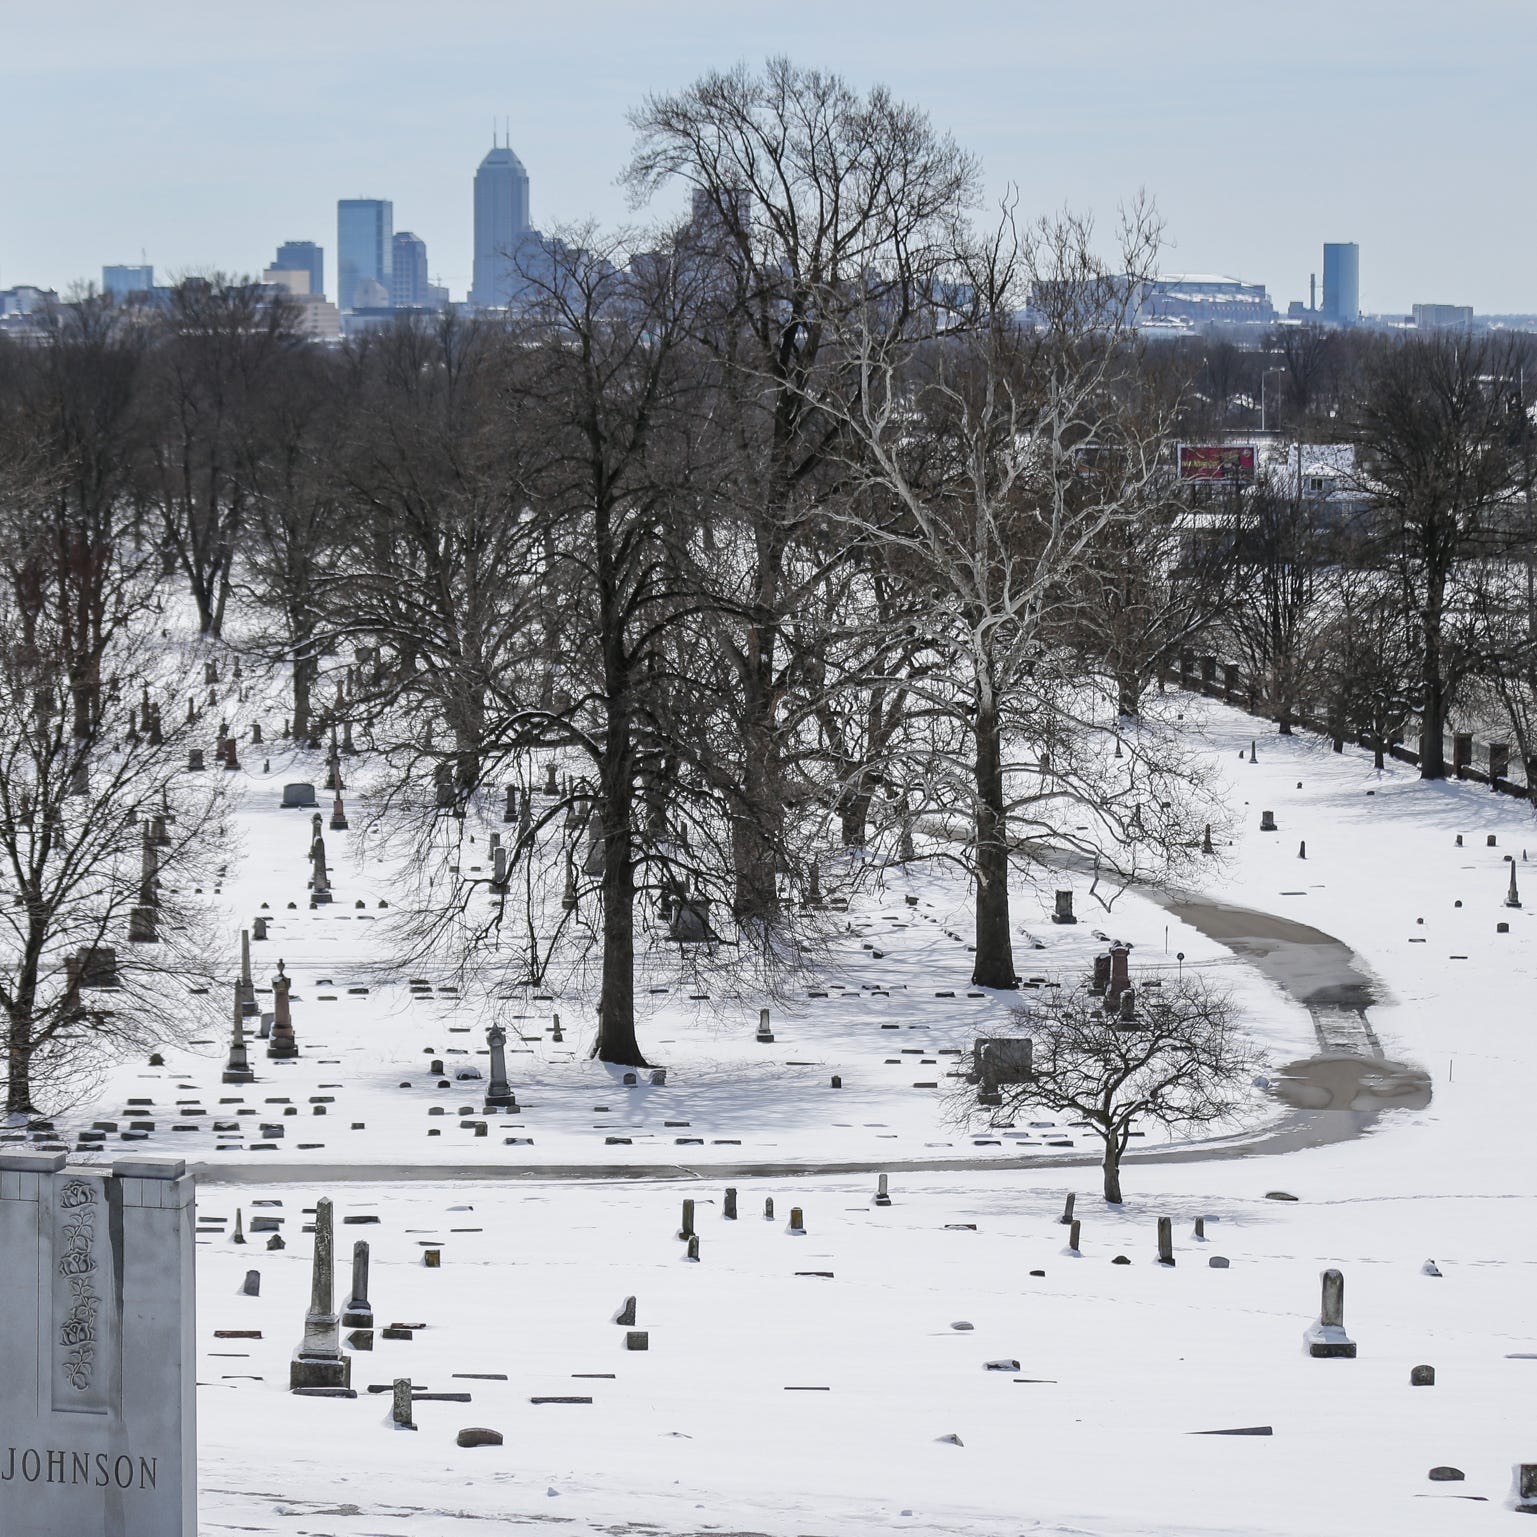 Indianapolis weather: We could get up to 4 inches of snow this weekend